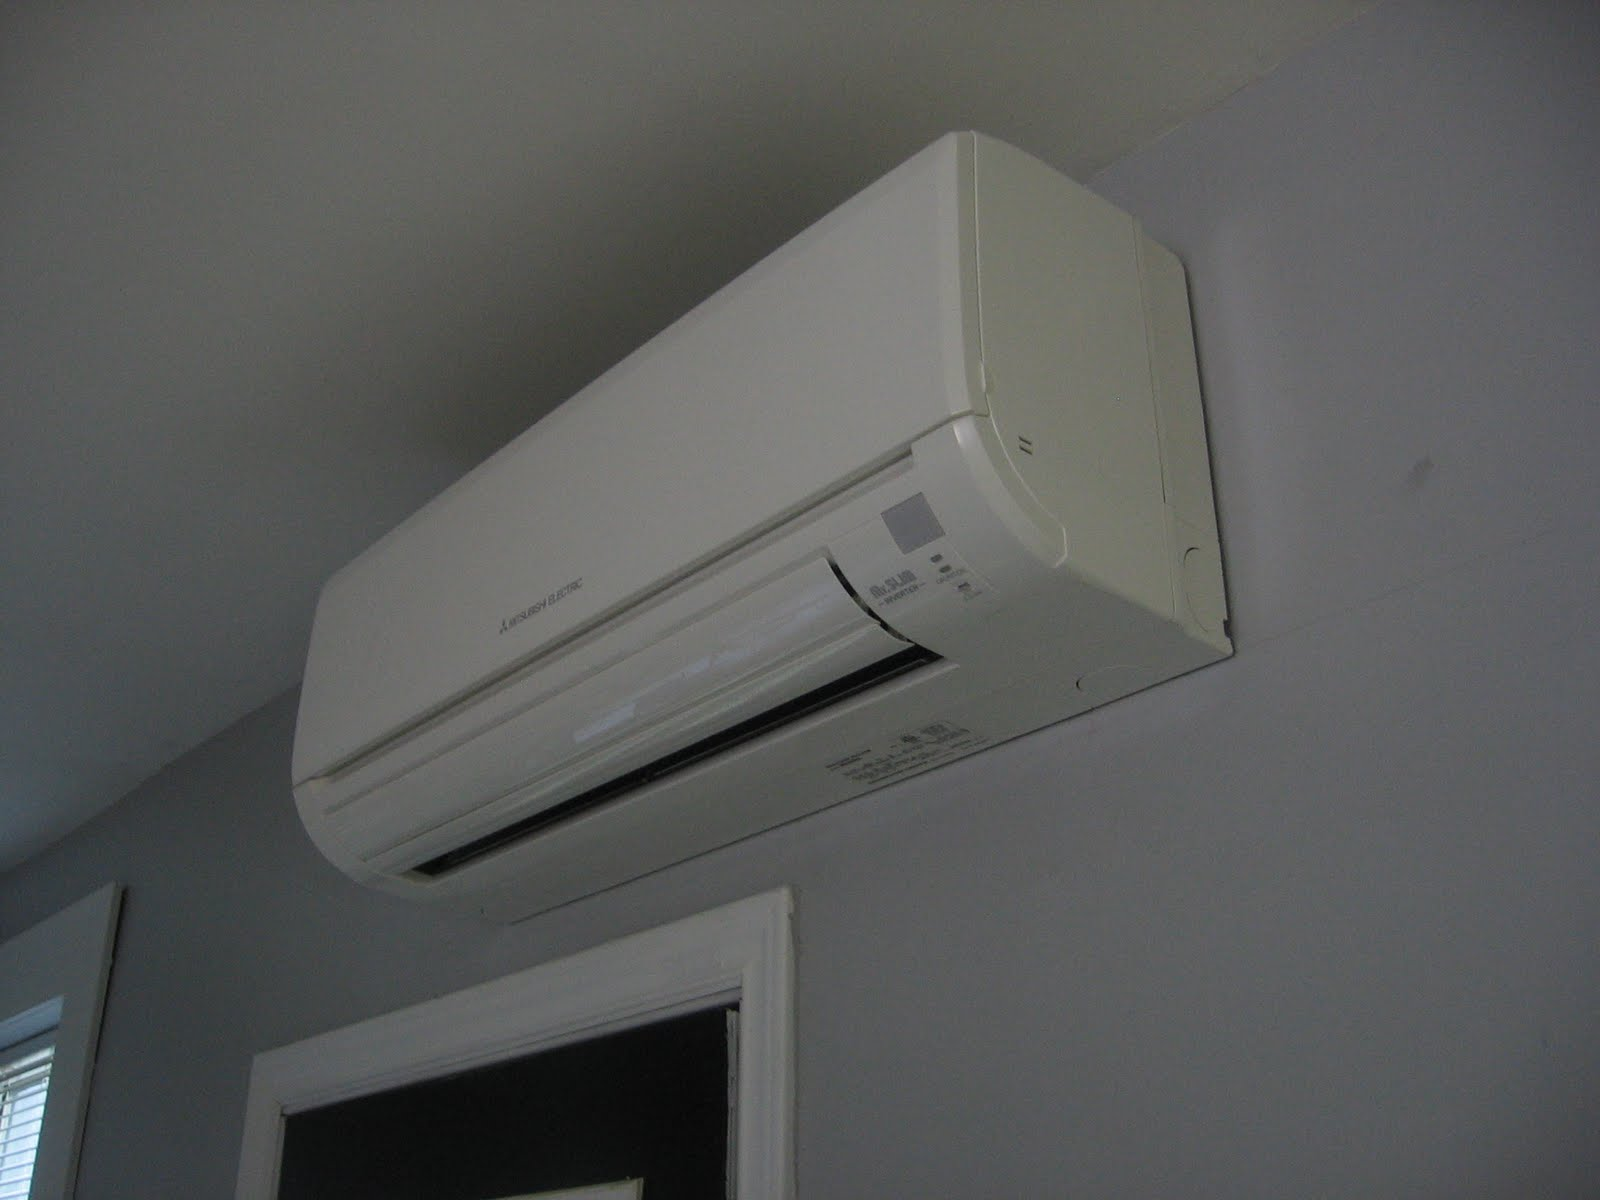 Mitsubishi Air Conditioners together with 2011 10 01 archive moreover Will Minisplits Replace Forced Air Heating And Cooling Systems furthermore Bedroom air 20conditioning together with Watch. on mitsubishi heating cooling wall unit